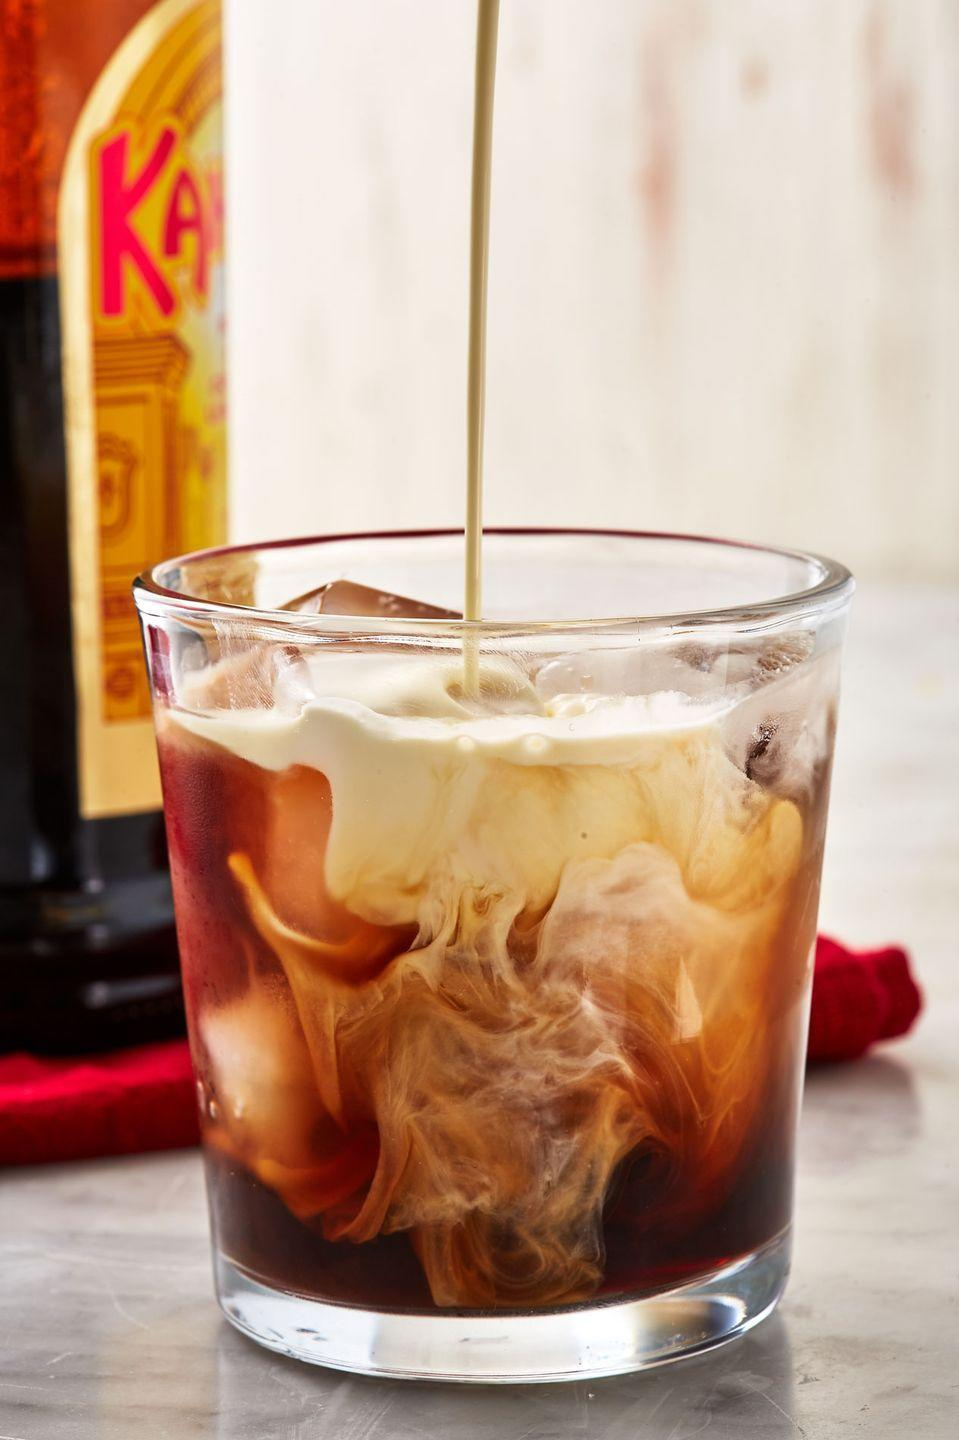 """<p>So simple to make but always a crowd pleaser.</p><p>et the recipe from <a href=""""https://www.delish.com/cooking/recipe-ideas/a29091466/white-russian-cocktail-recipe/"""" rel=""""nofollow noopener"""" target=""""_blank"""" data-ylk=""""slk:Delish"""" class=""""link rapid-noclick-resp"""">Delish</a>.</p>"""